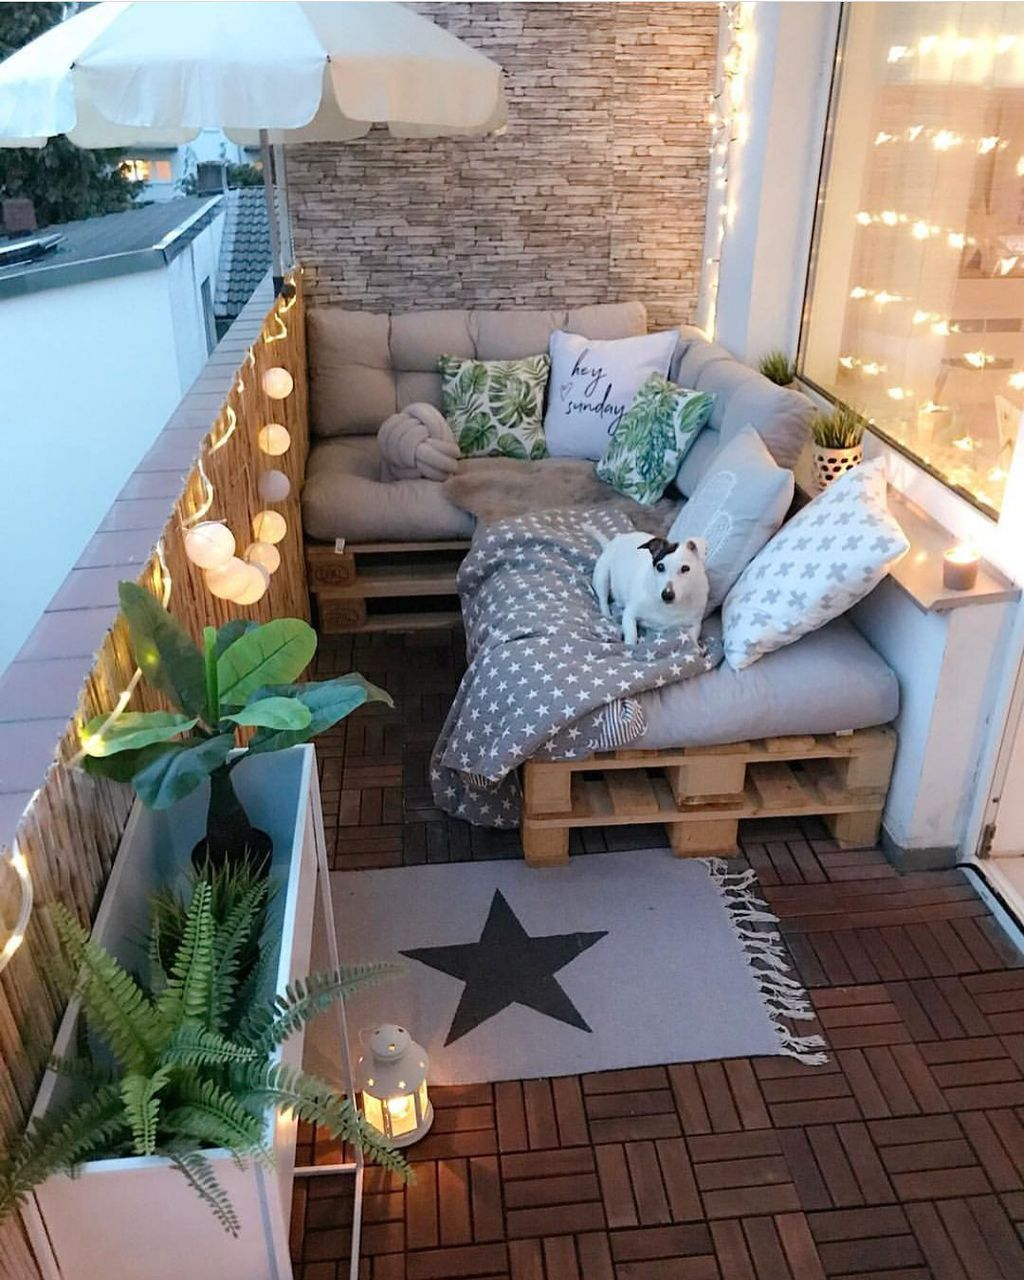 36 Awesome Small Balcony Garden Ideas #smallbalconyfurniture